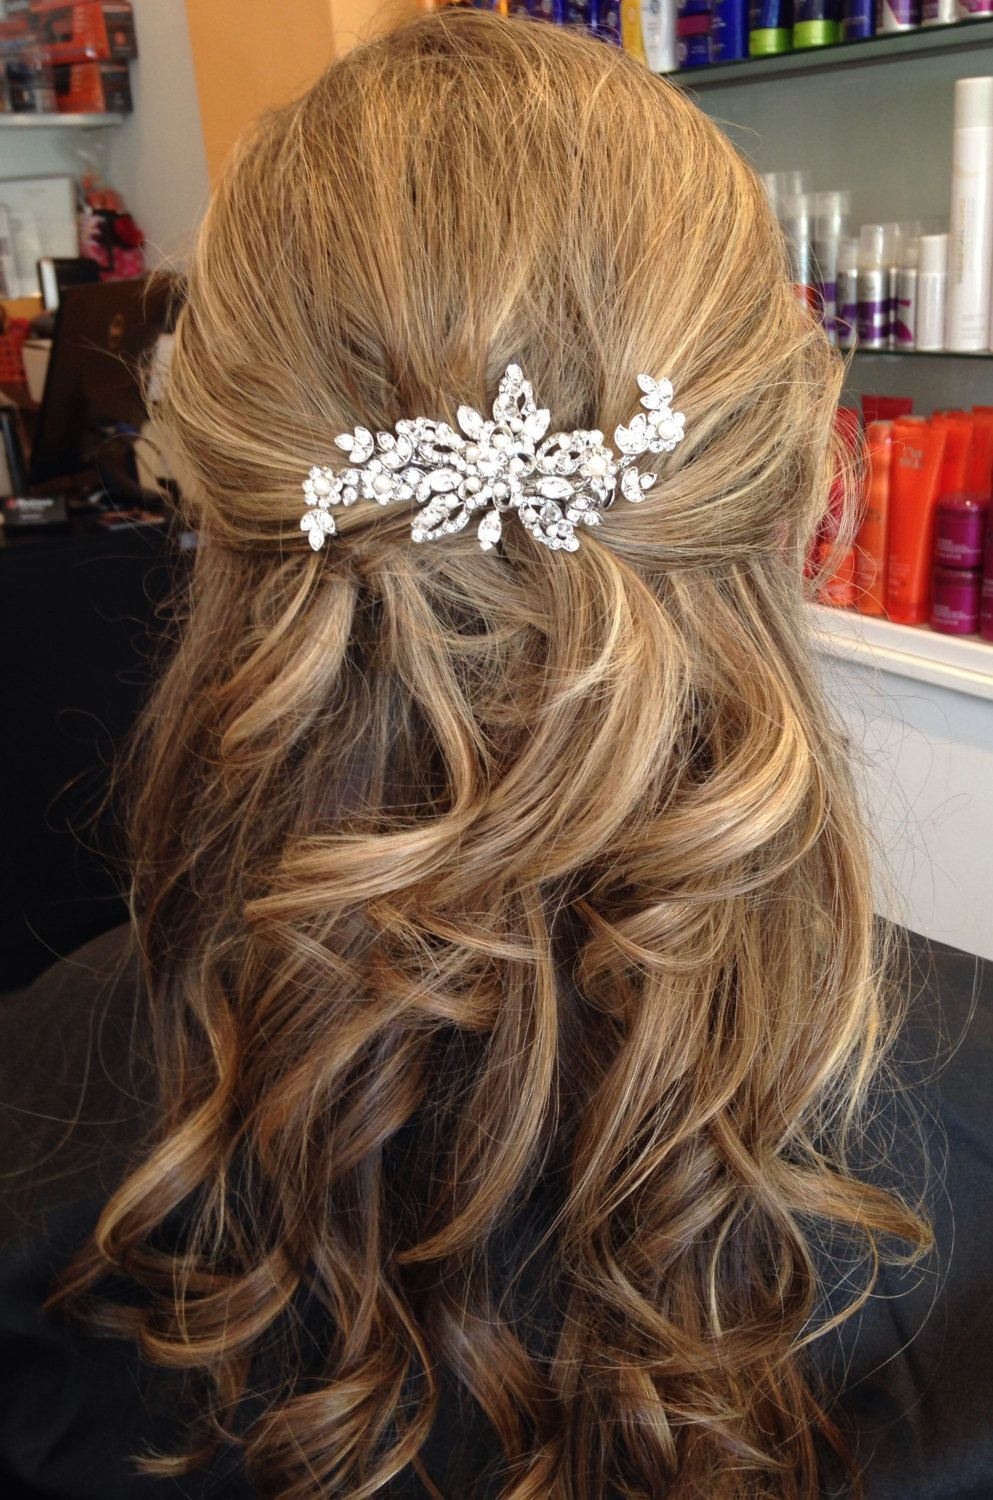 vintage inspired bridal hair accessories, rhinestone wedding hair